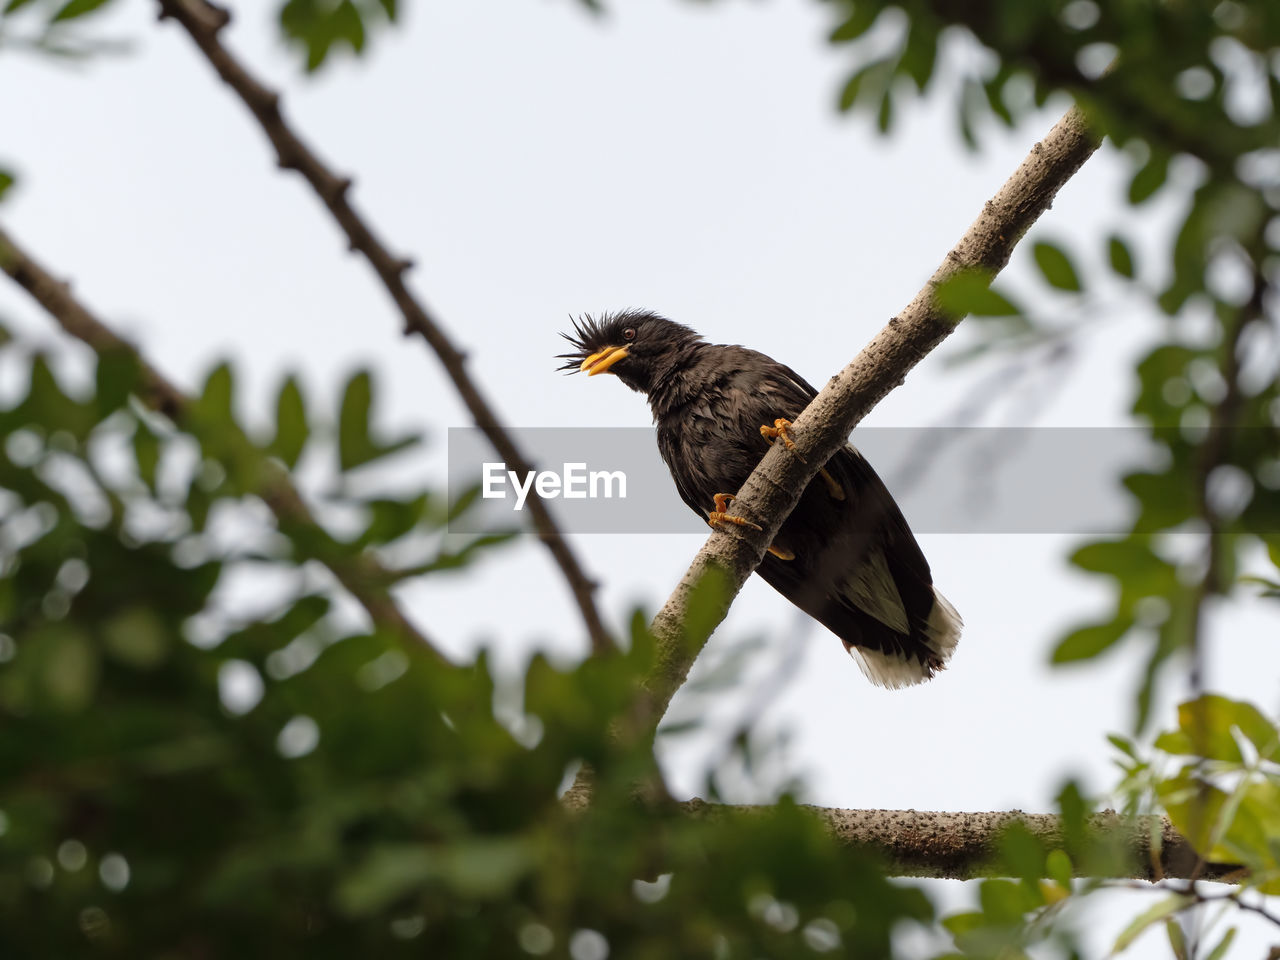 animal wildlife, animal themes, animal, one animal, animals in the wild, bird, vertebrate, plant, tree, low angle view, branch, nature, perching, no people, day, selective focus, sky, spread wings, outdoors, eagle